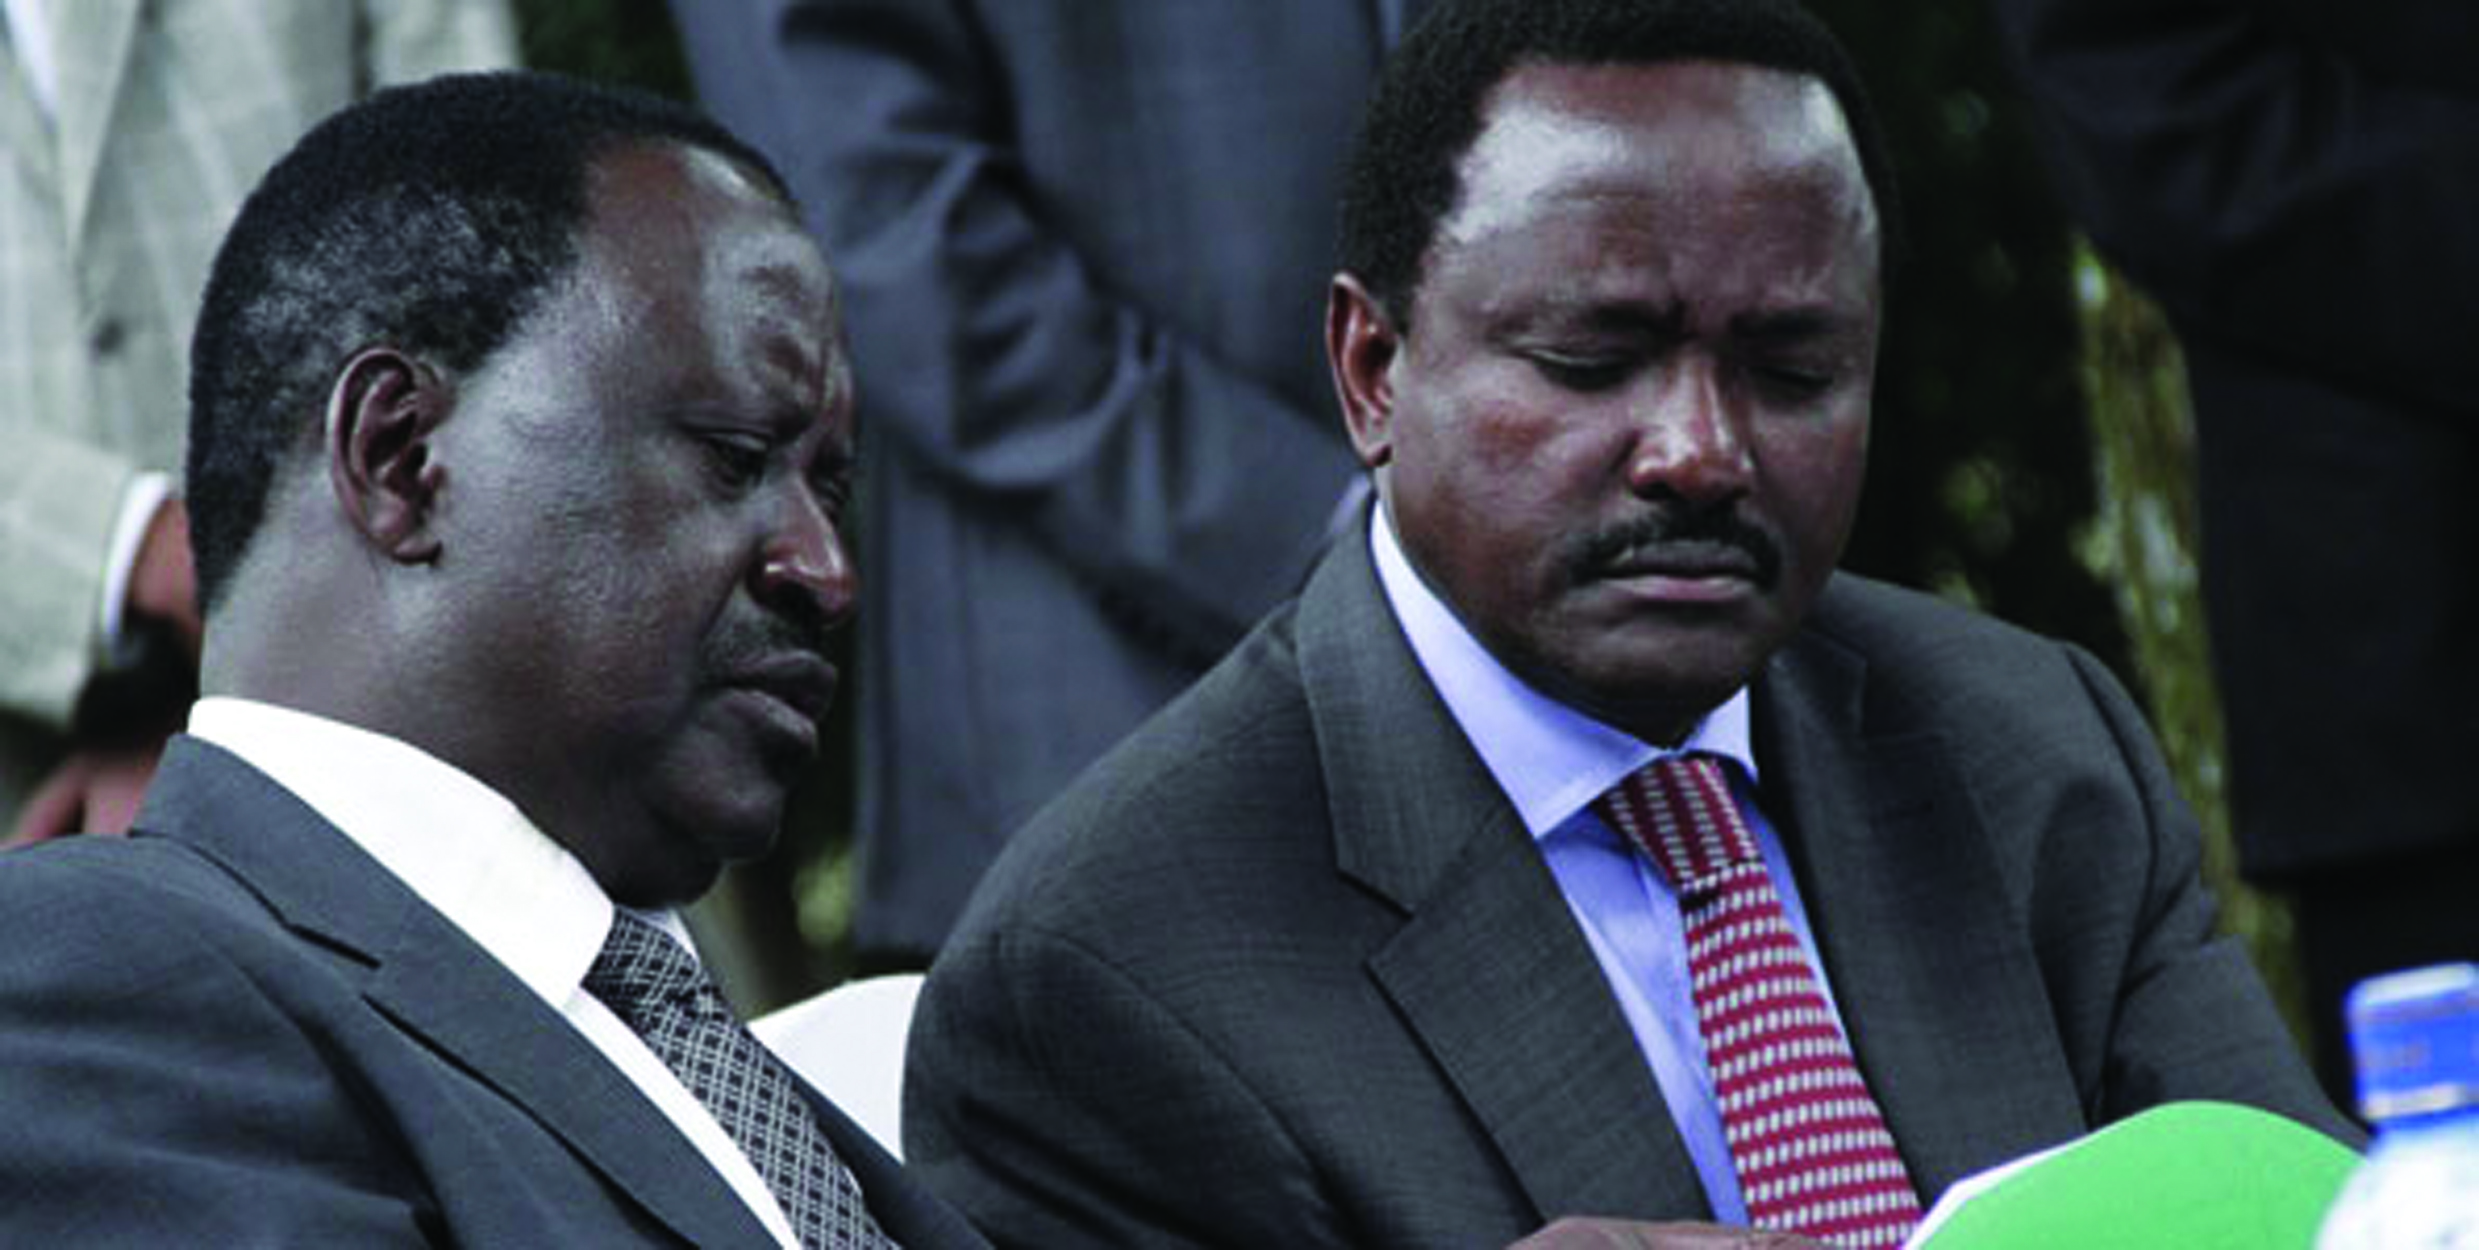 Yes, Raila deserved Nasa ticket more than anyone else